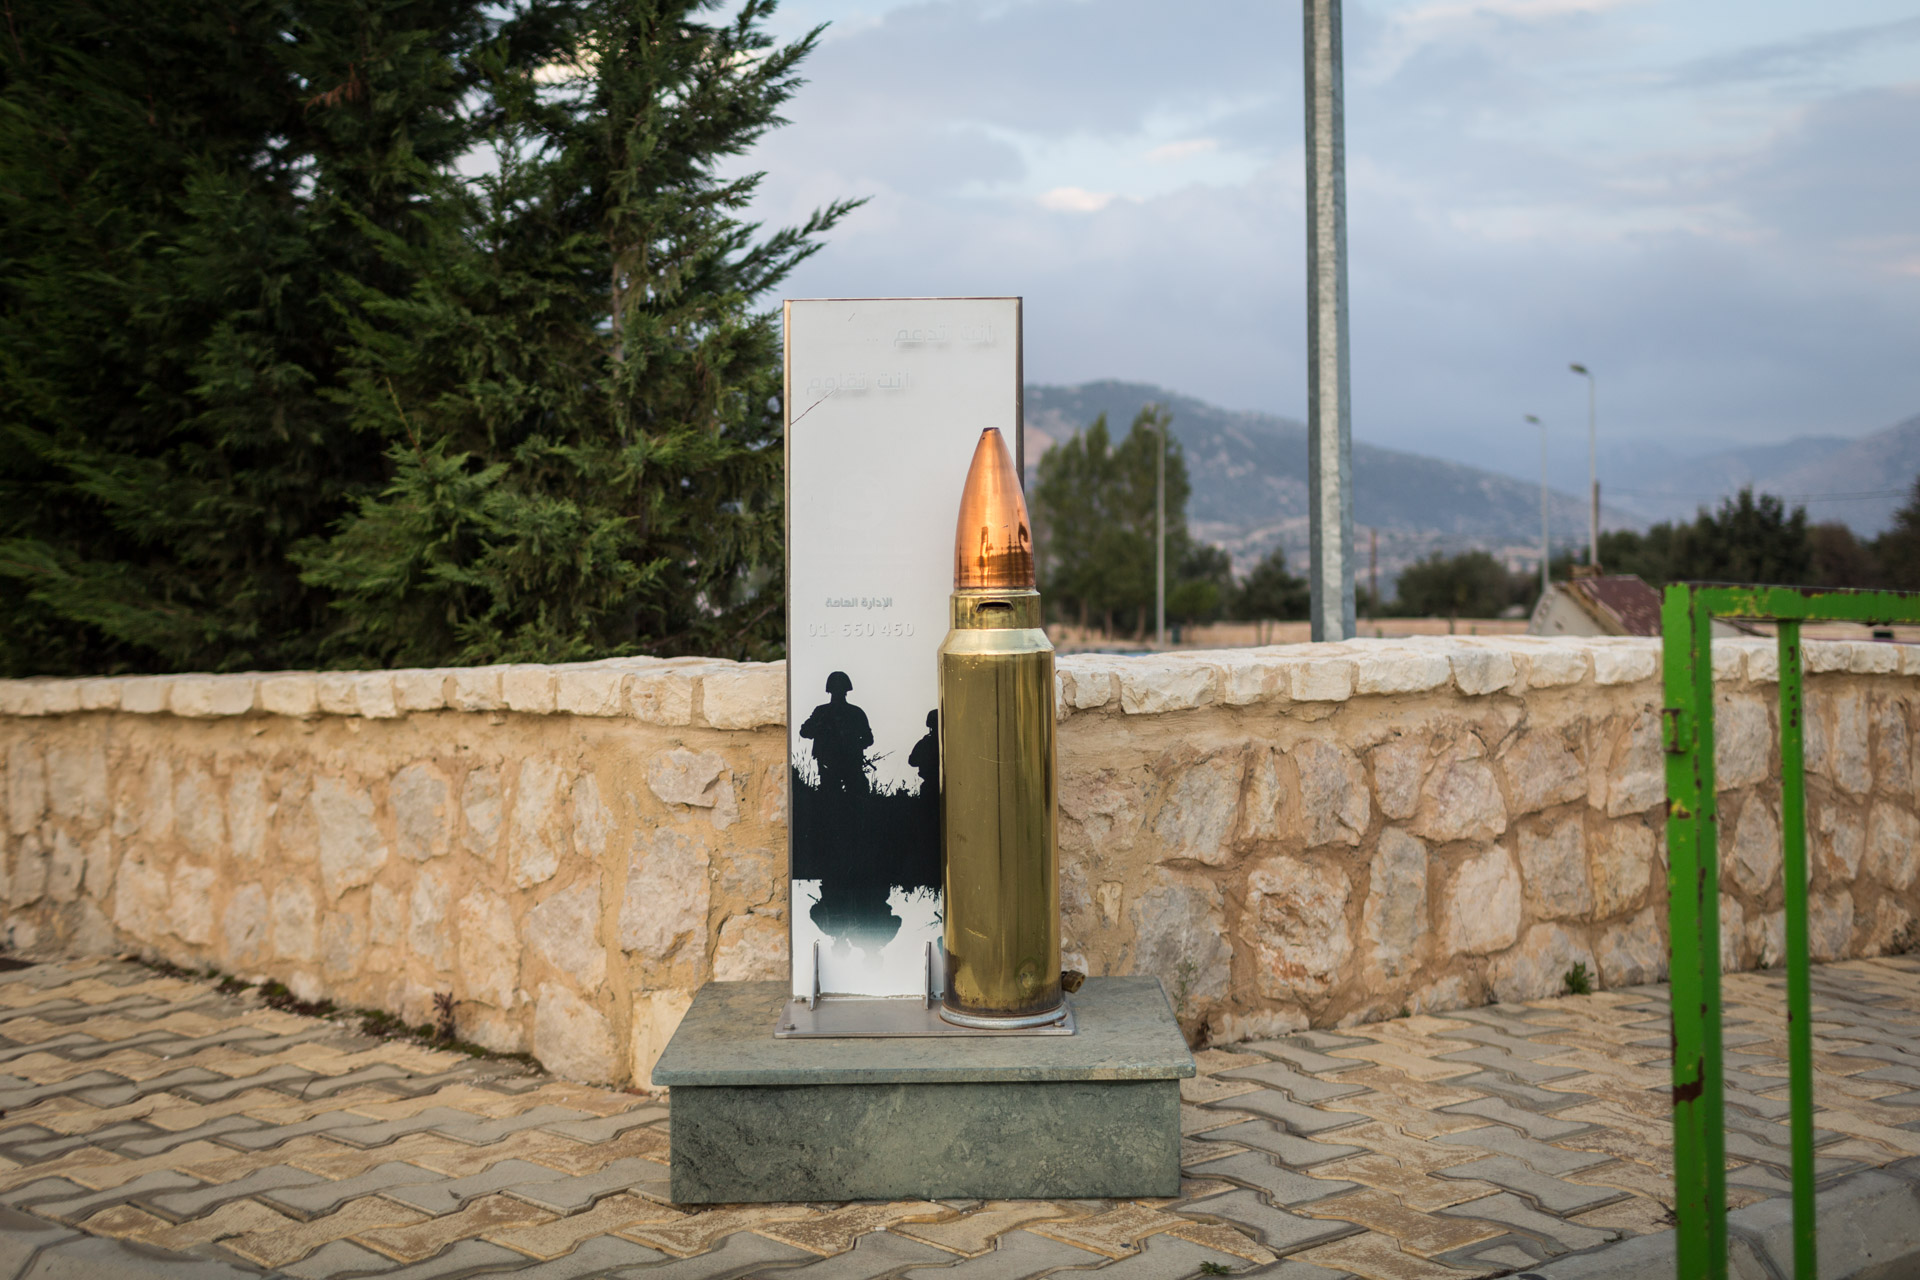 An enlarged copy of a rifle round serves as donation box for supporting the Islamic resistance.